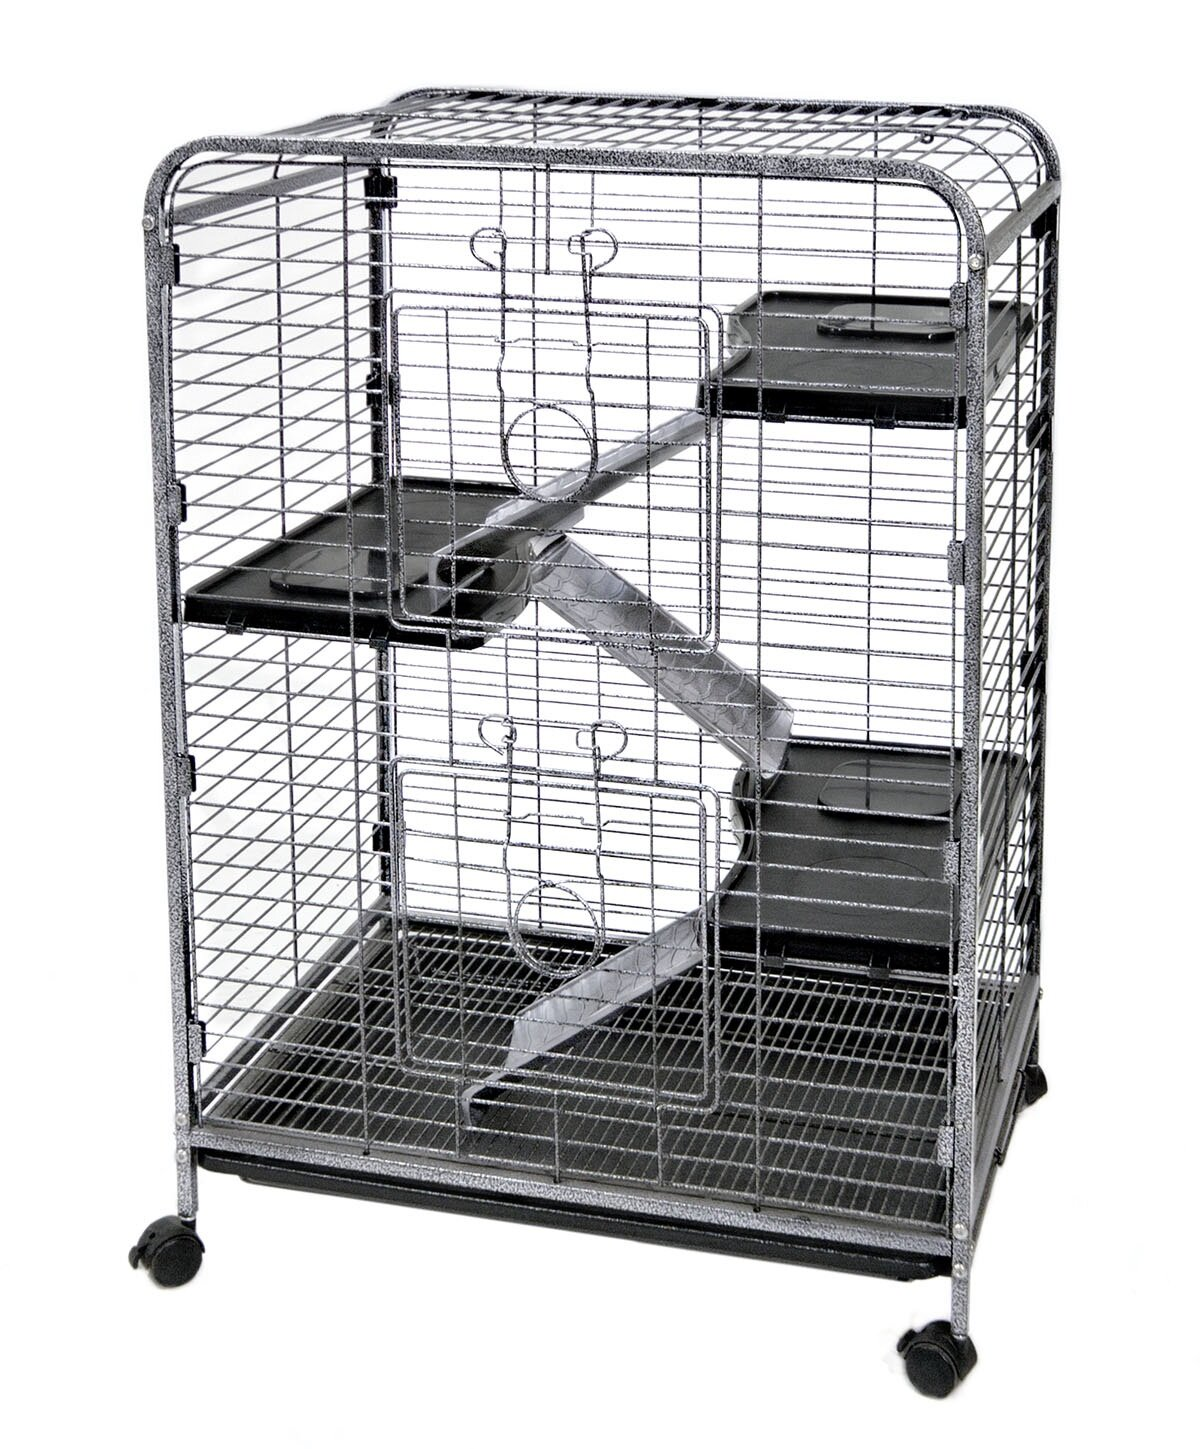 Ware Manufacturing Home Sweet Home 4-Level Small Animal Cage ...